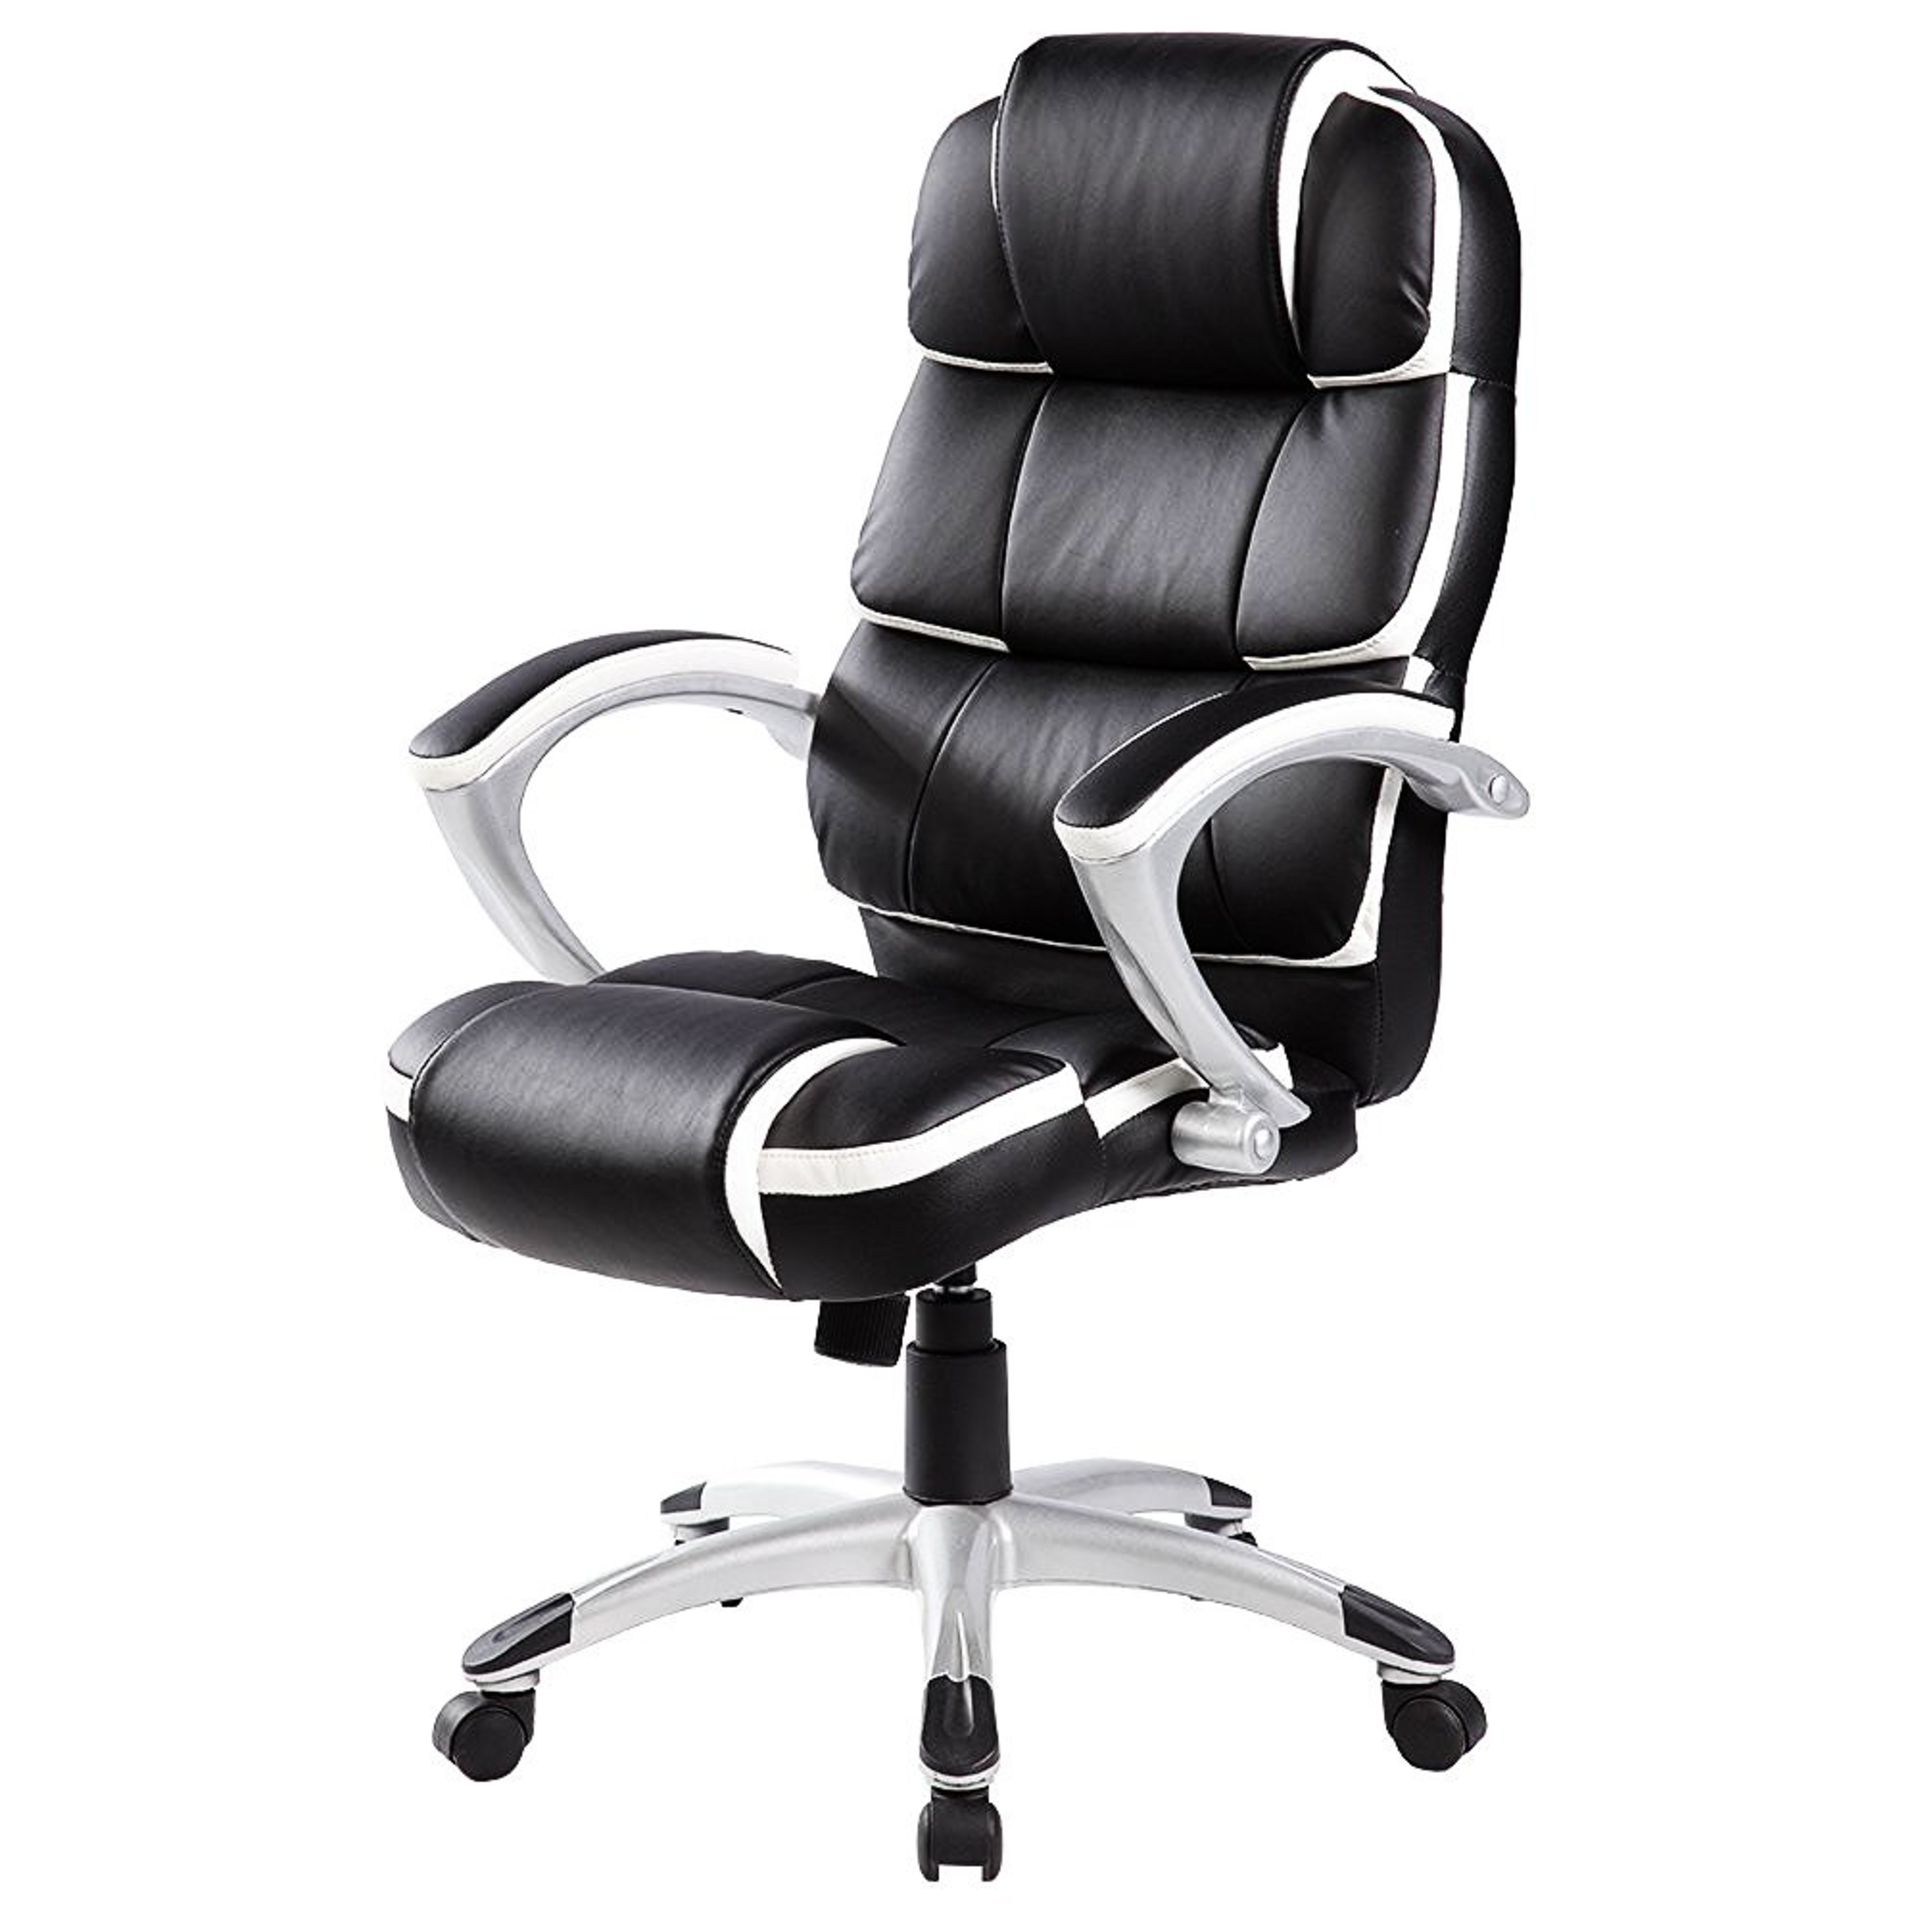 Lot 459 - (RU388) Luxury Designer Computer Office Chair - Black with White Accents Our renowned high q...